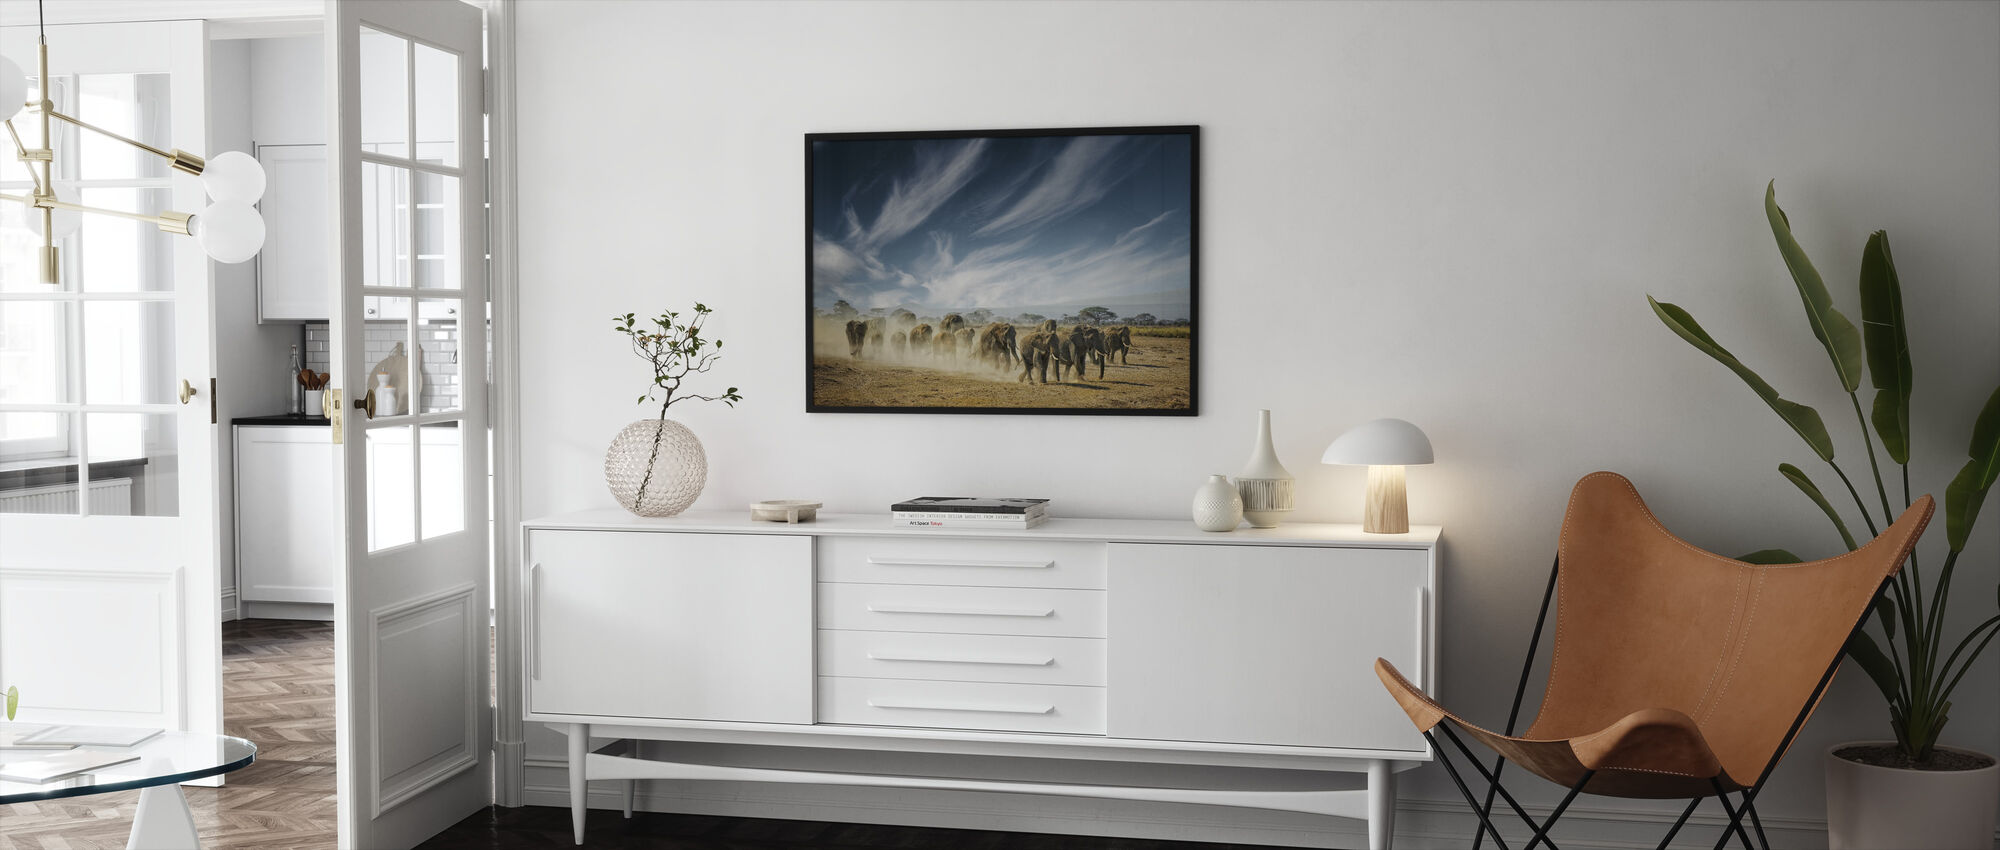 A Very Long Thinking - Framed print - Living Room